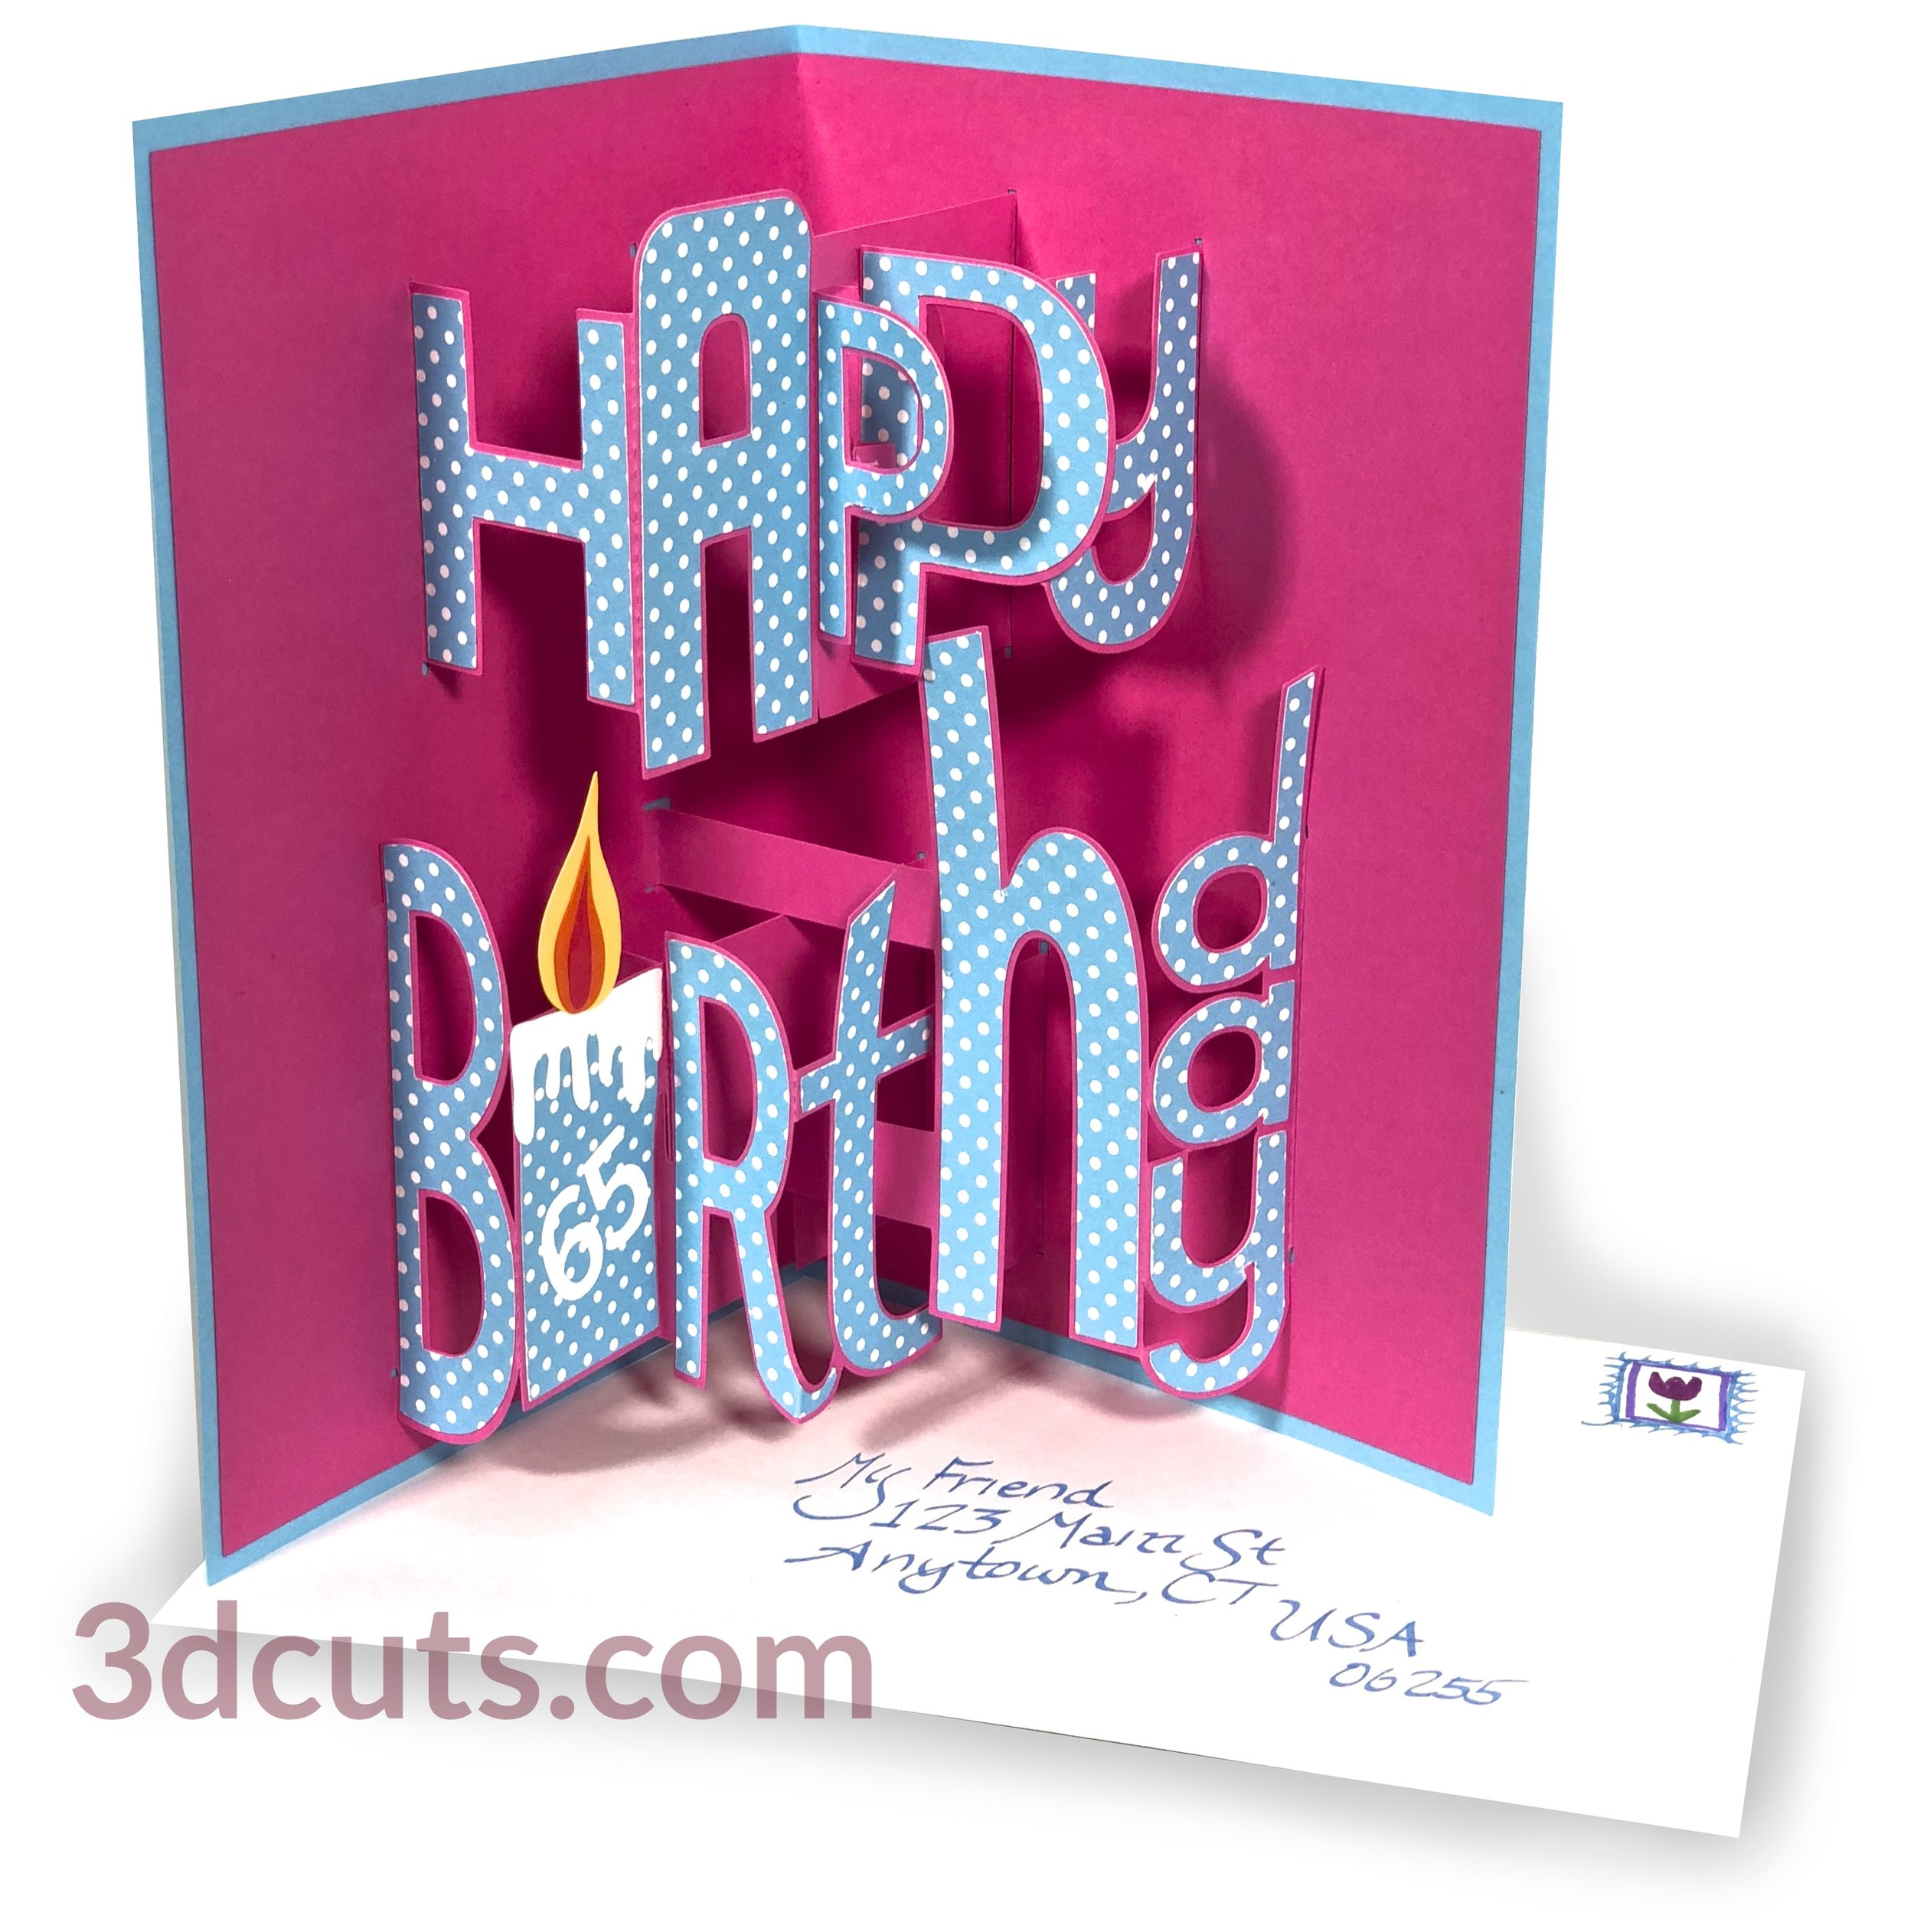 Whimsy Font Pop-up Happy Birthday Card, 3DCuts.com, Marji Roy, 3D cutting files in .svg, .dxf, and .pdf formats for use with Silhouette, Cricut and other cutting machines, paper crafting files